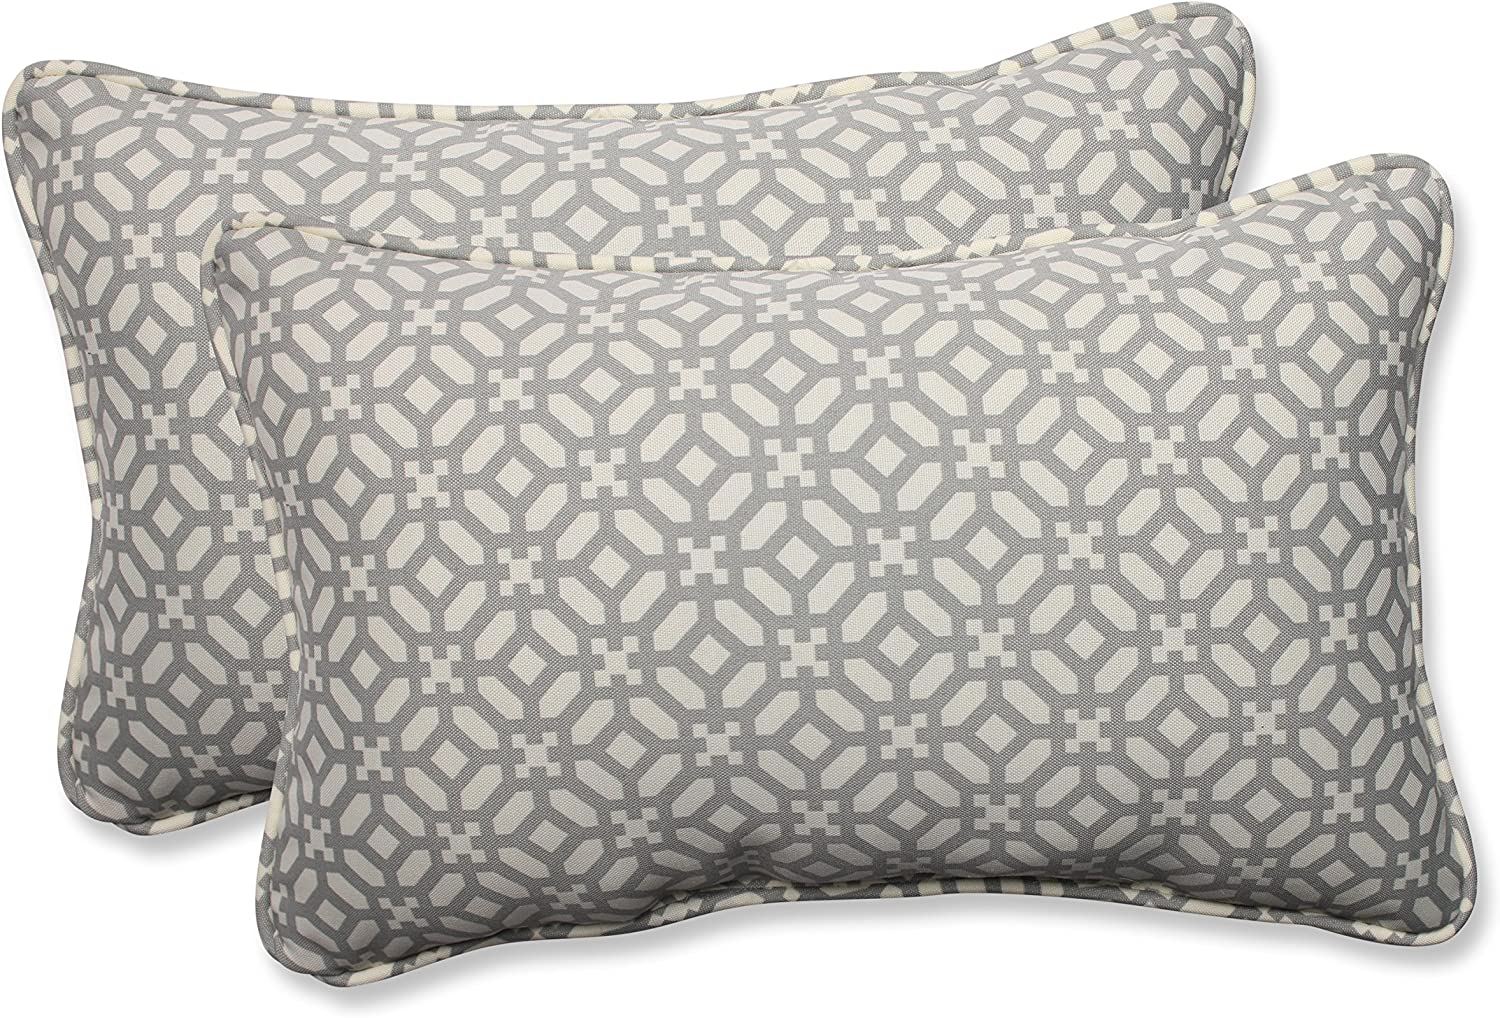 Pillow Perfect Outdoor Indoor in Max 51% OFF Pebble Pillows The Frame Lumbar Spasm price